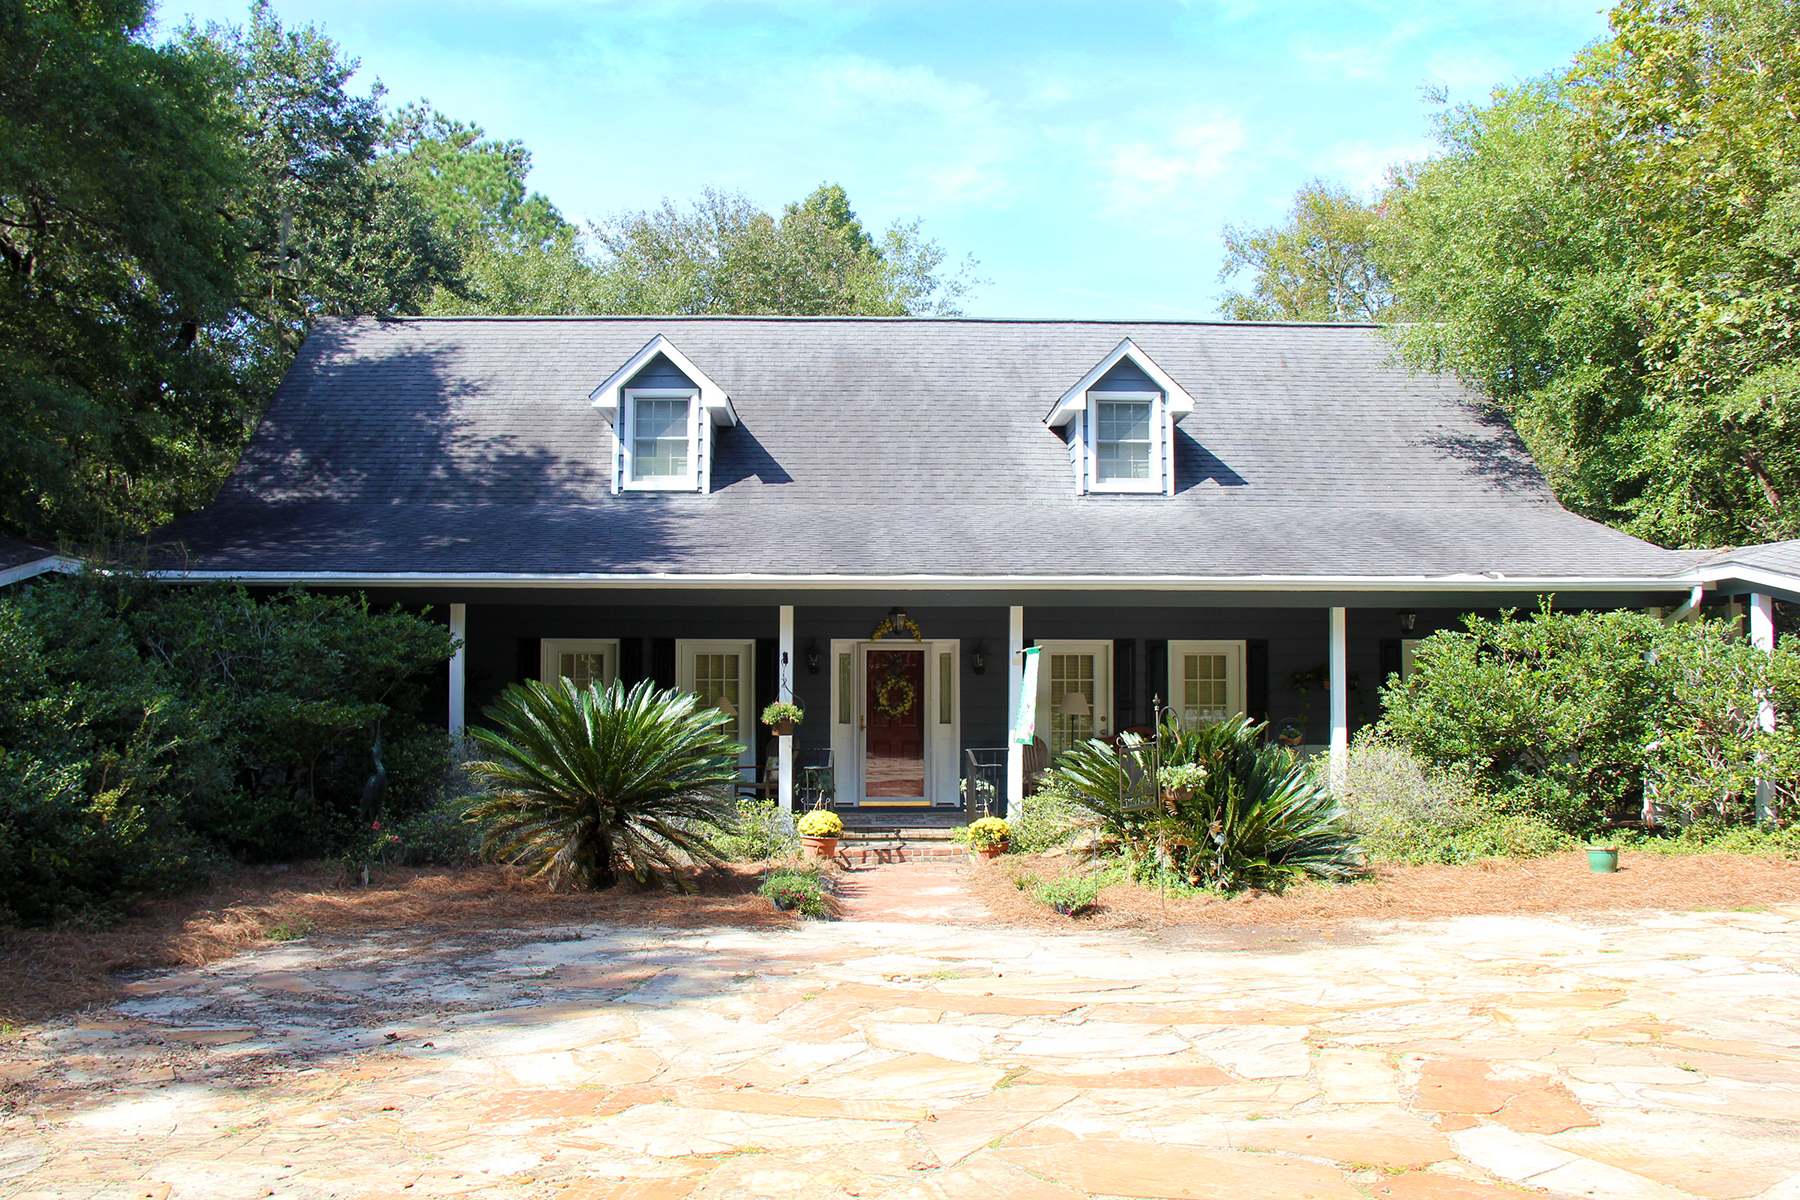 Single Family Home for Sale at 4996 Maybank Hwy Wadmalaw Island, South Carolina, 29487 United States